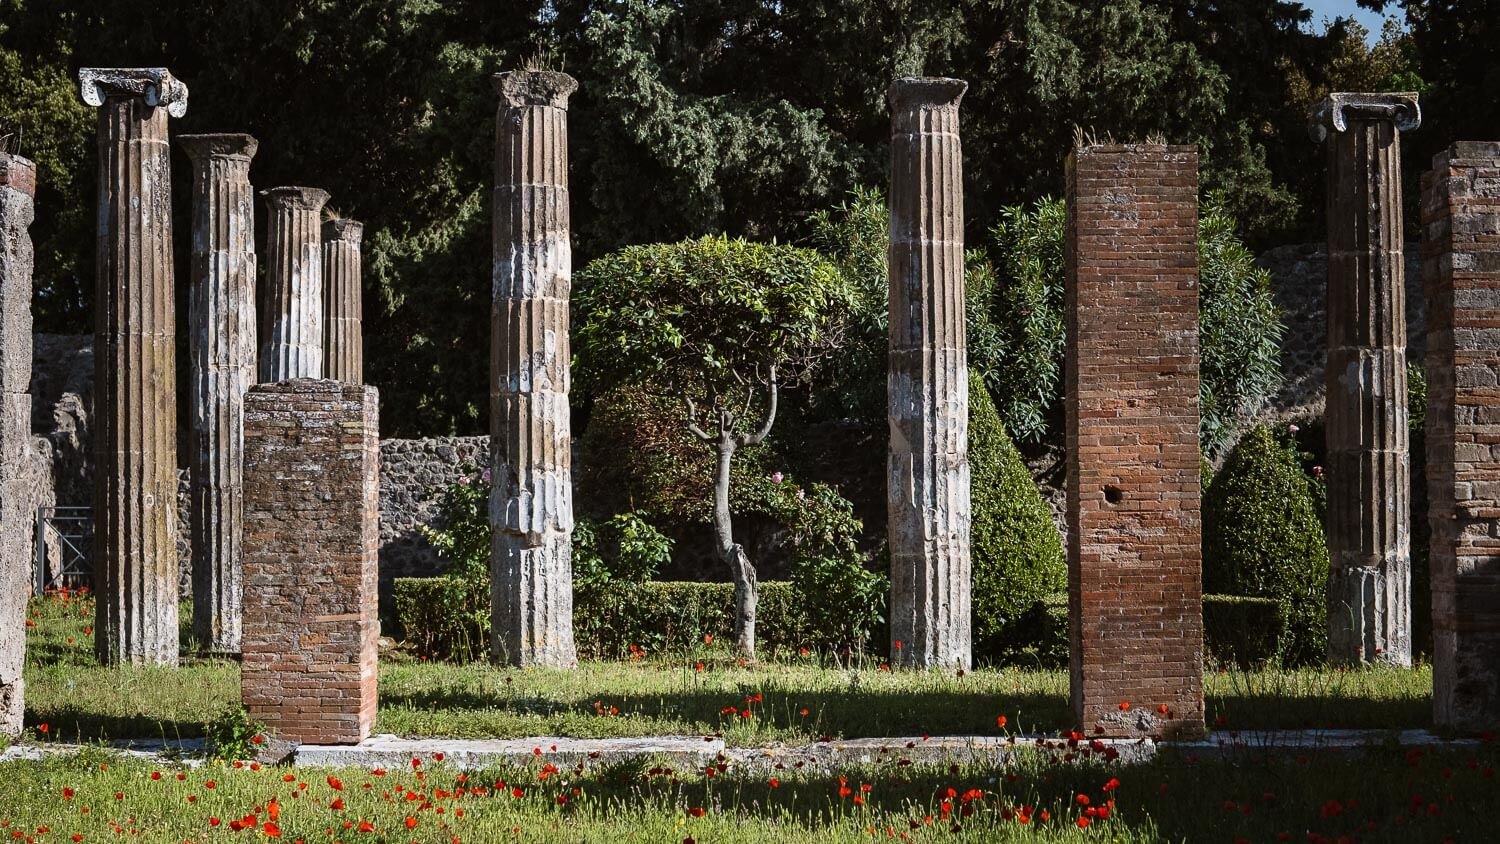 """A garden in Pompeii. Travel photography and guide by © Natasha Lequepeys for """"And Then I Met Yoko"""". #pompeii #italy #fujifilm #travelphotography"""